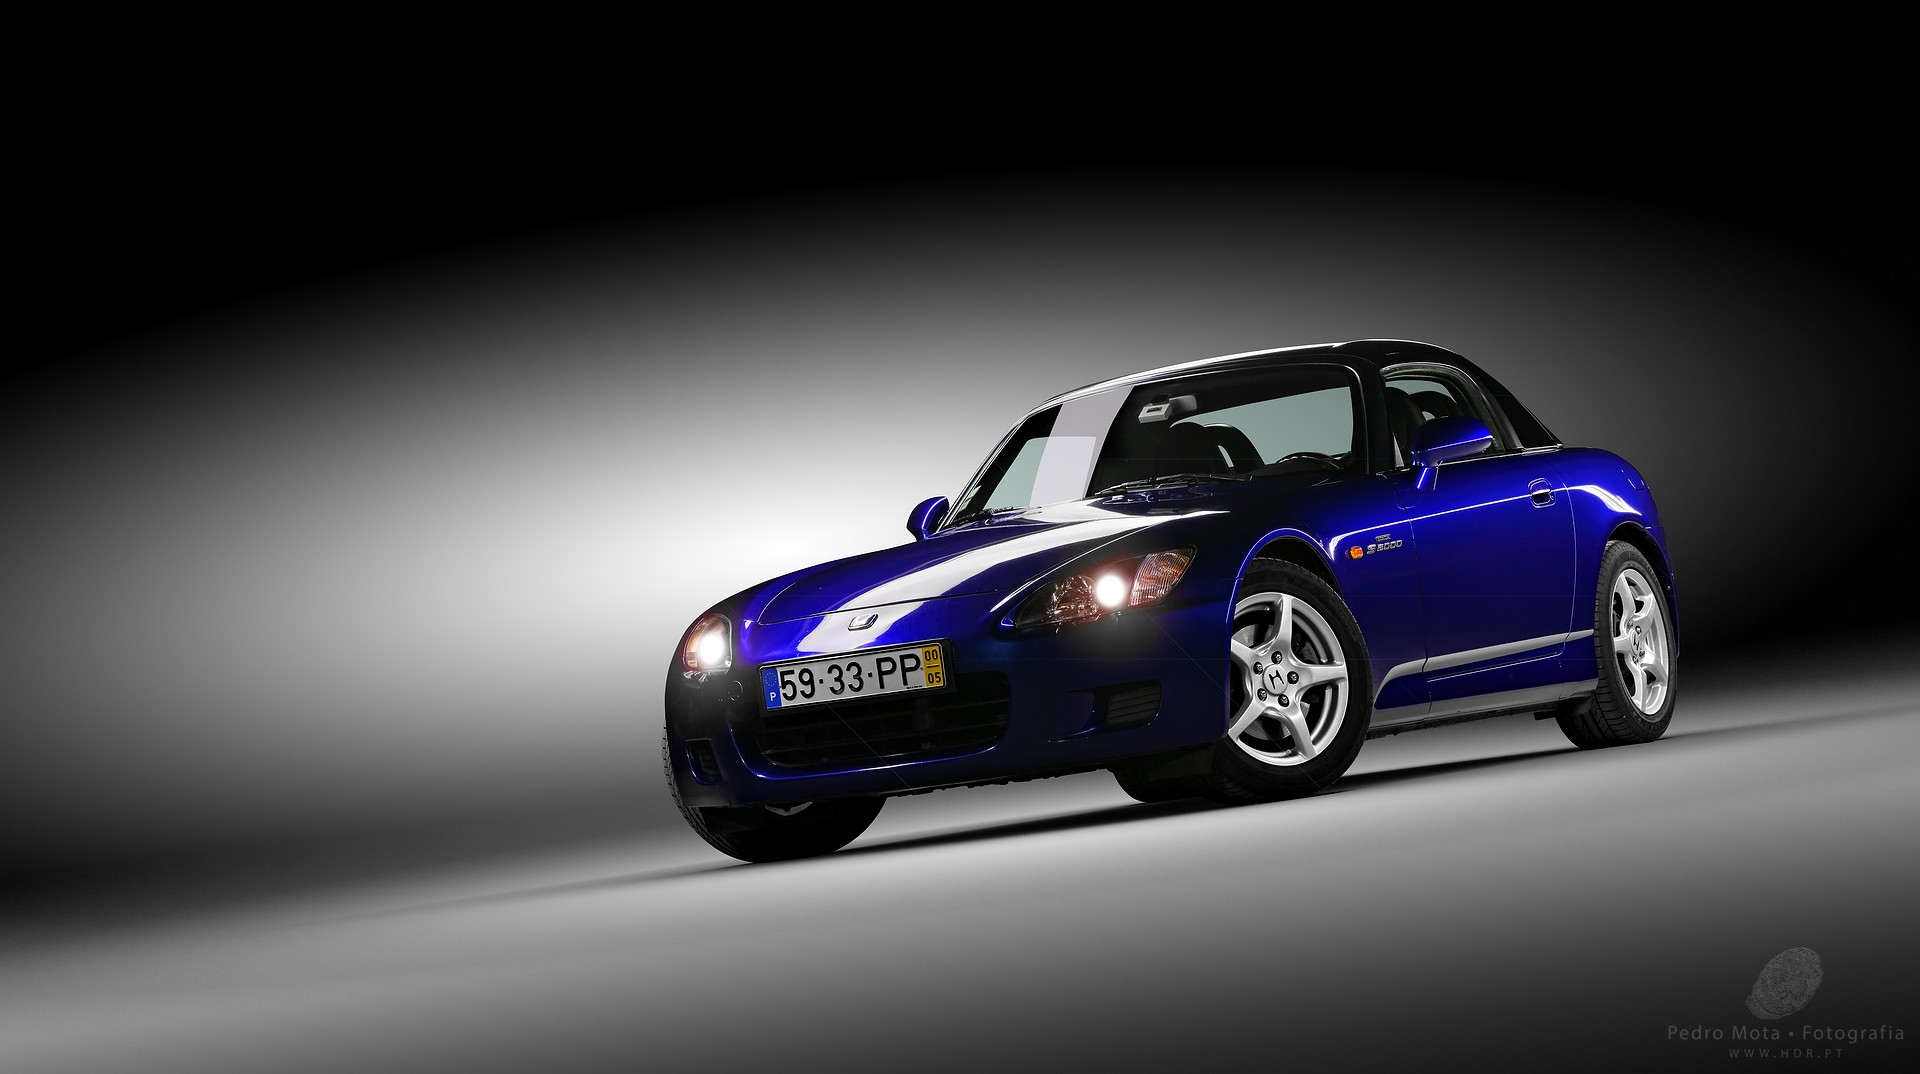 Honda S2000 Light painting